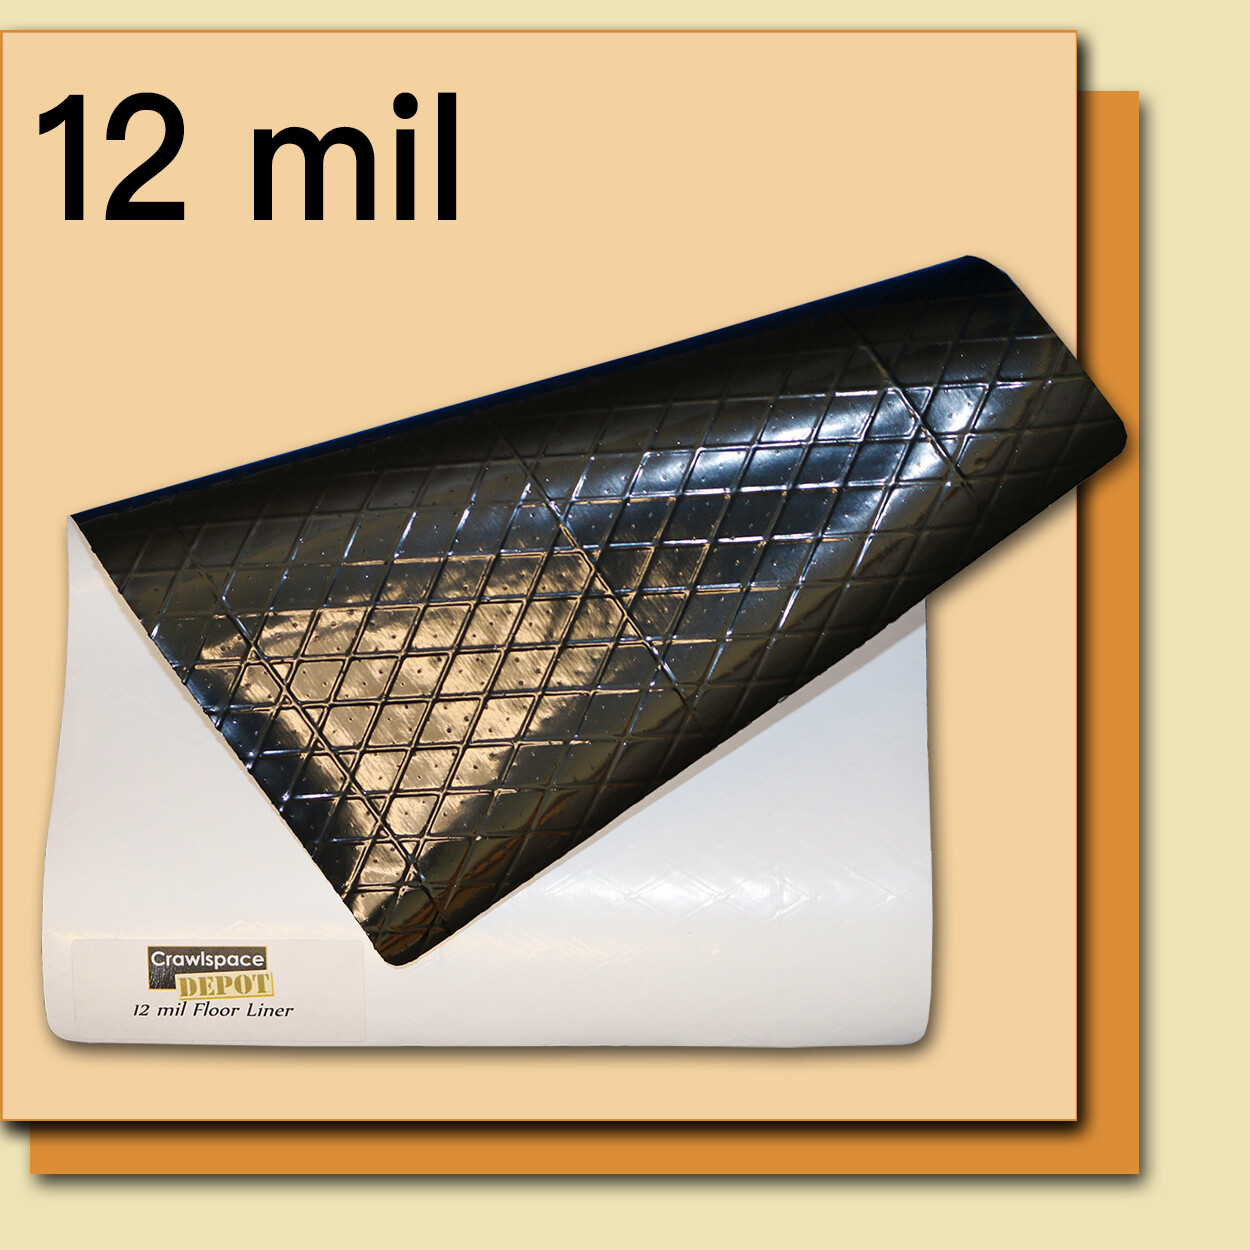 12 Mil Economy Crawl Space Liner (WB) - 12' x 100' Roll by Crawl Space Depot